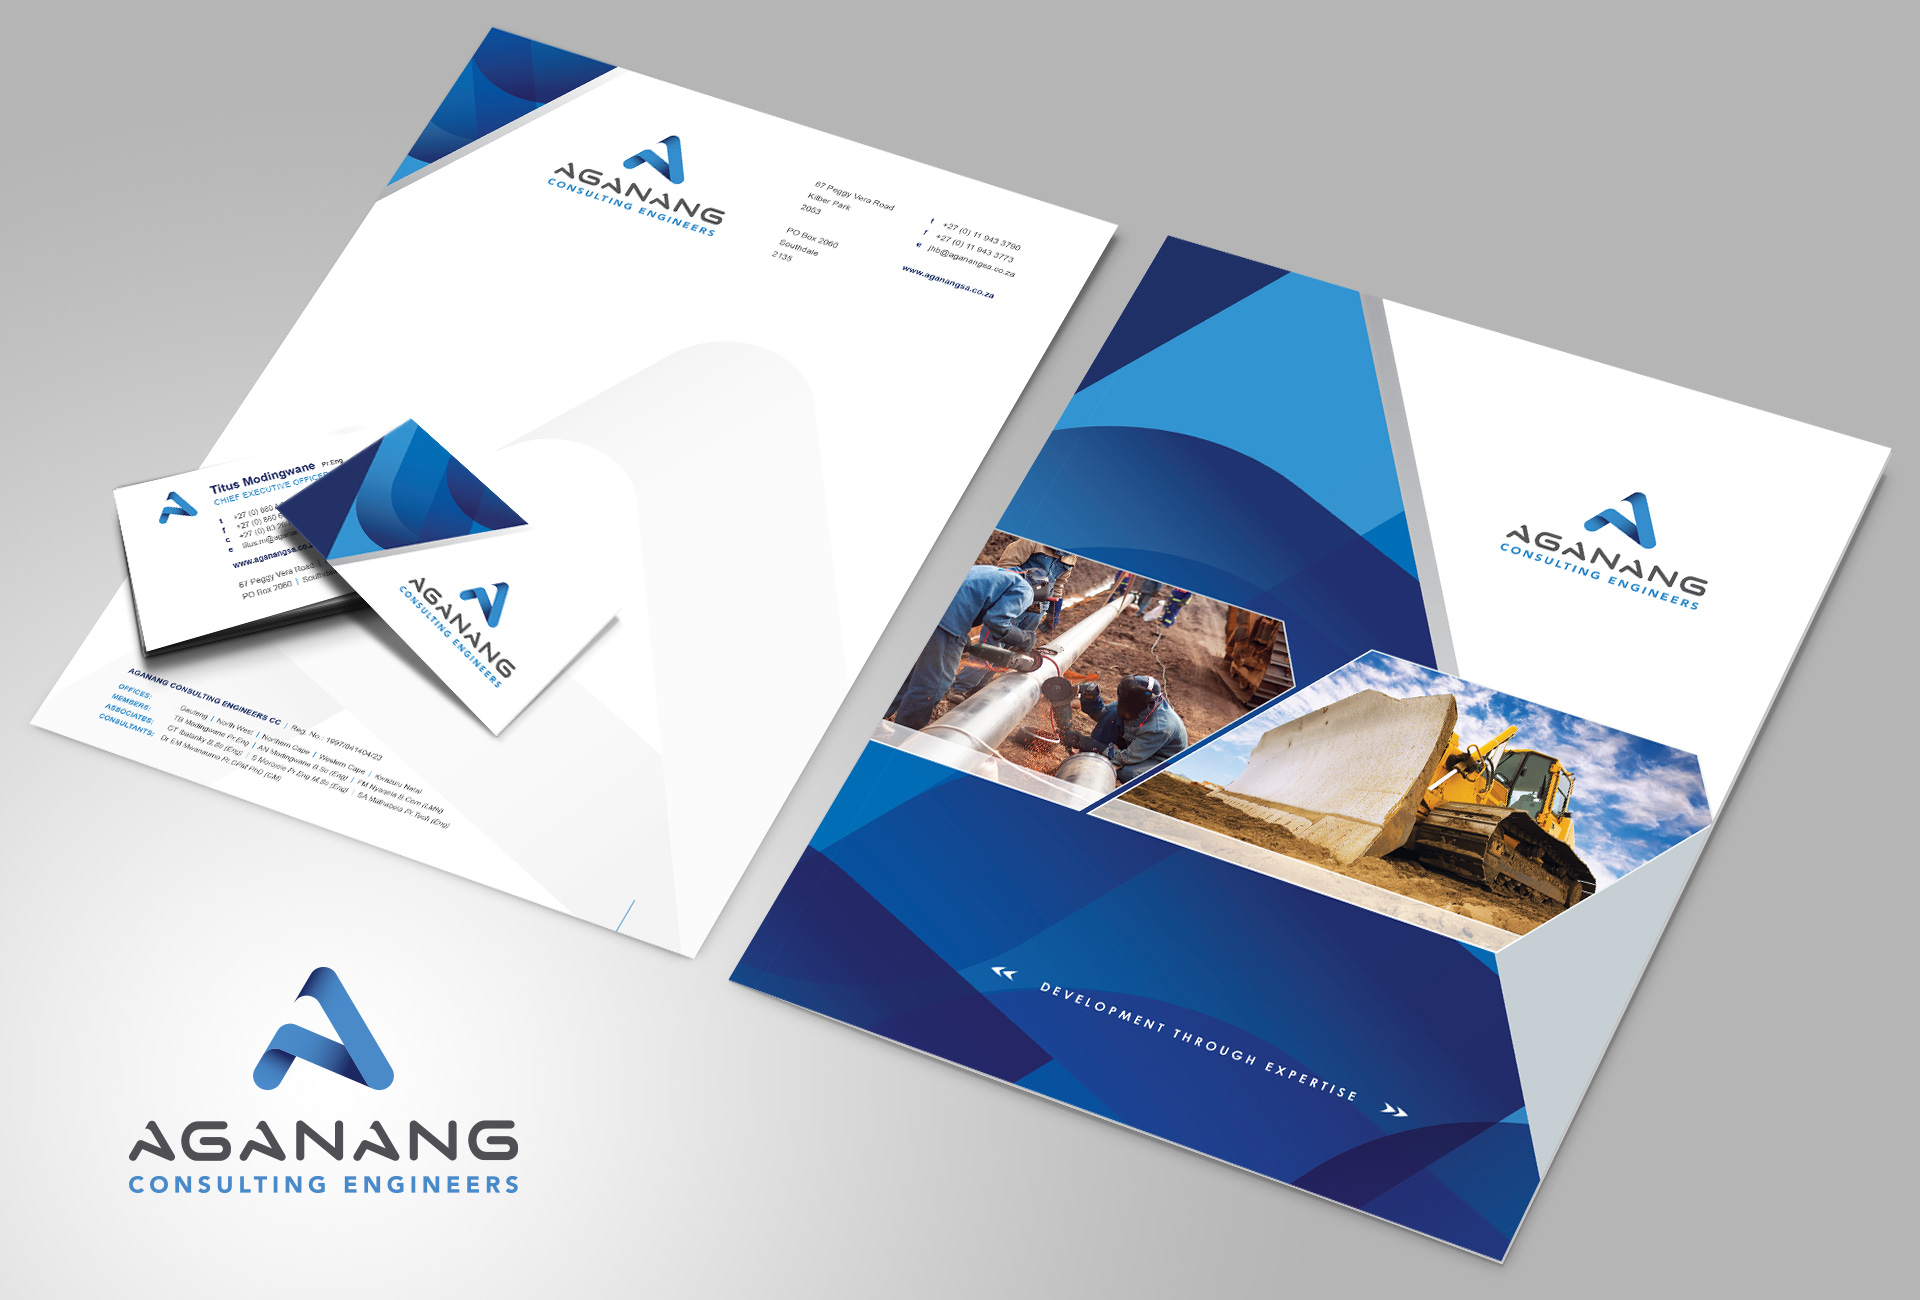 Aganang Consulting Engineers